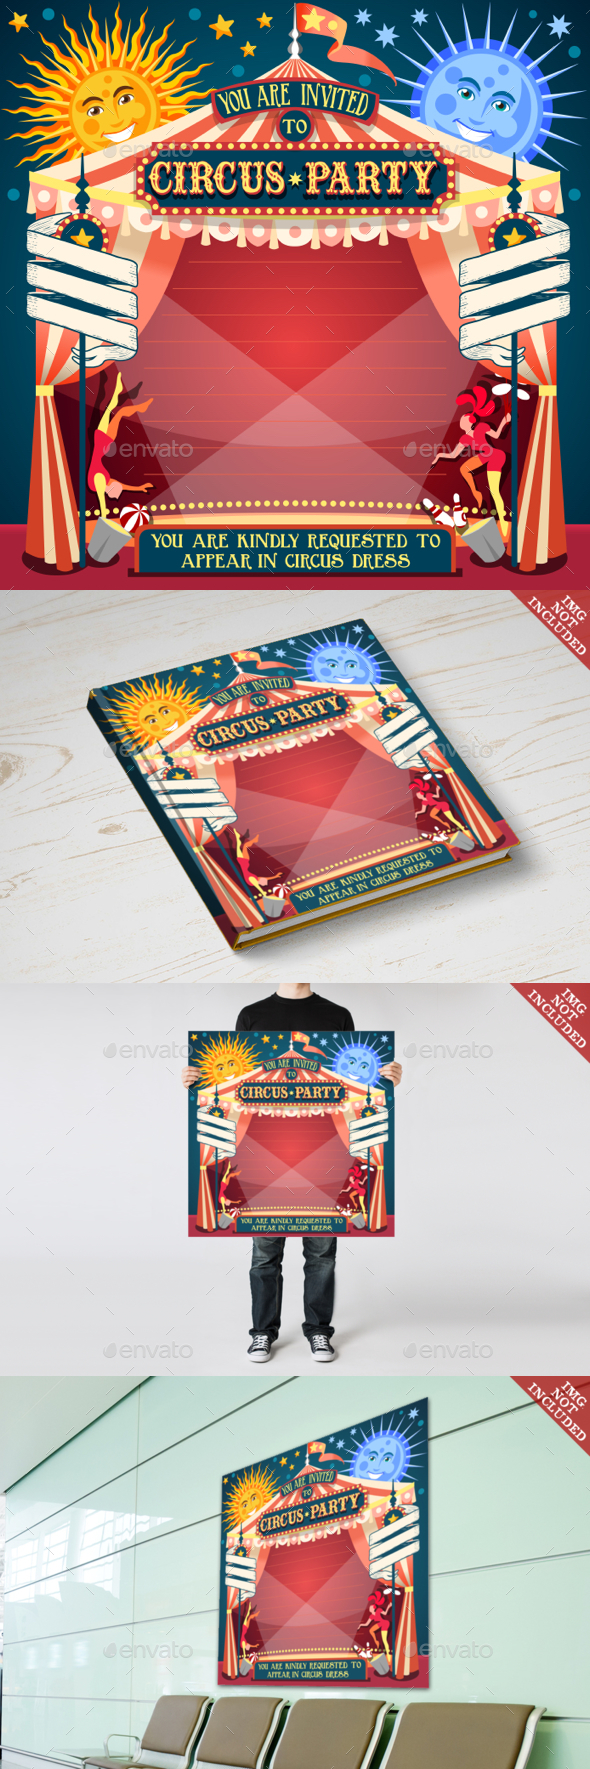 Circus 02 Invitation Vintage 2D - Decorative Vectors